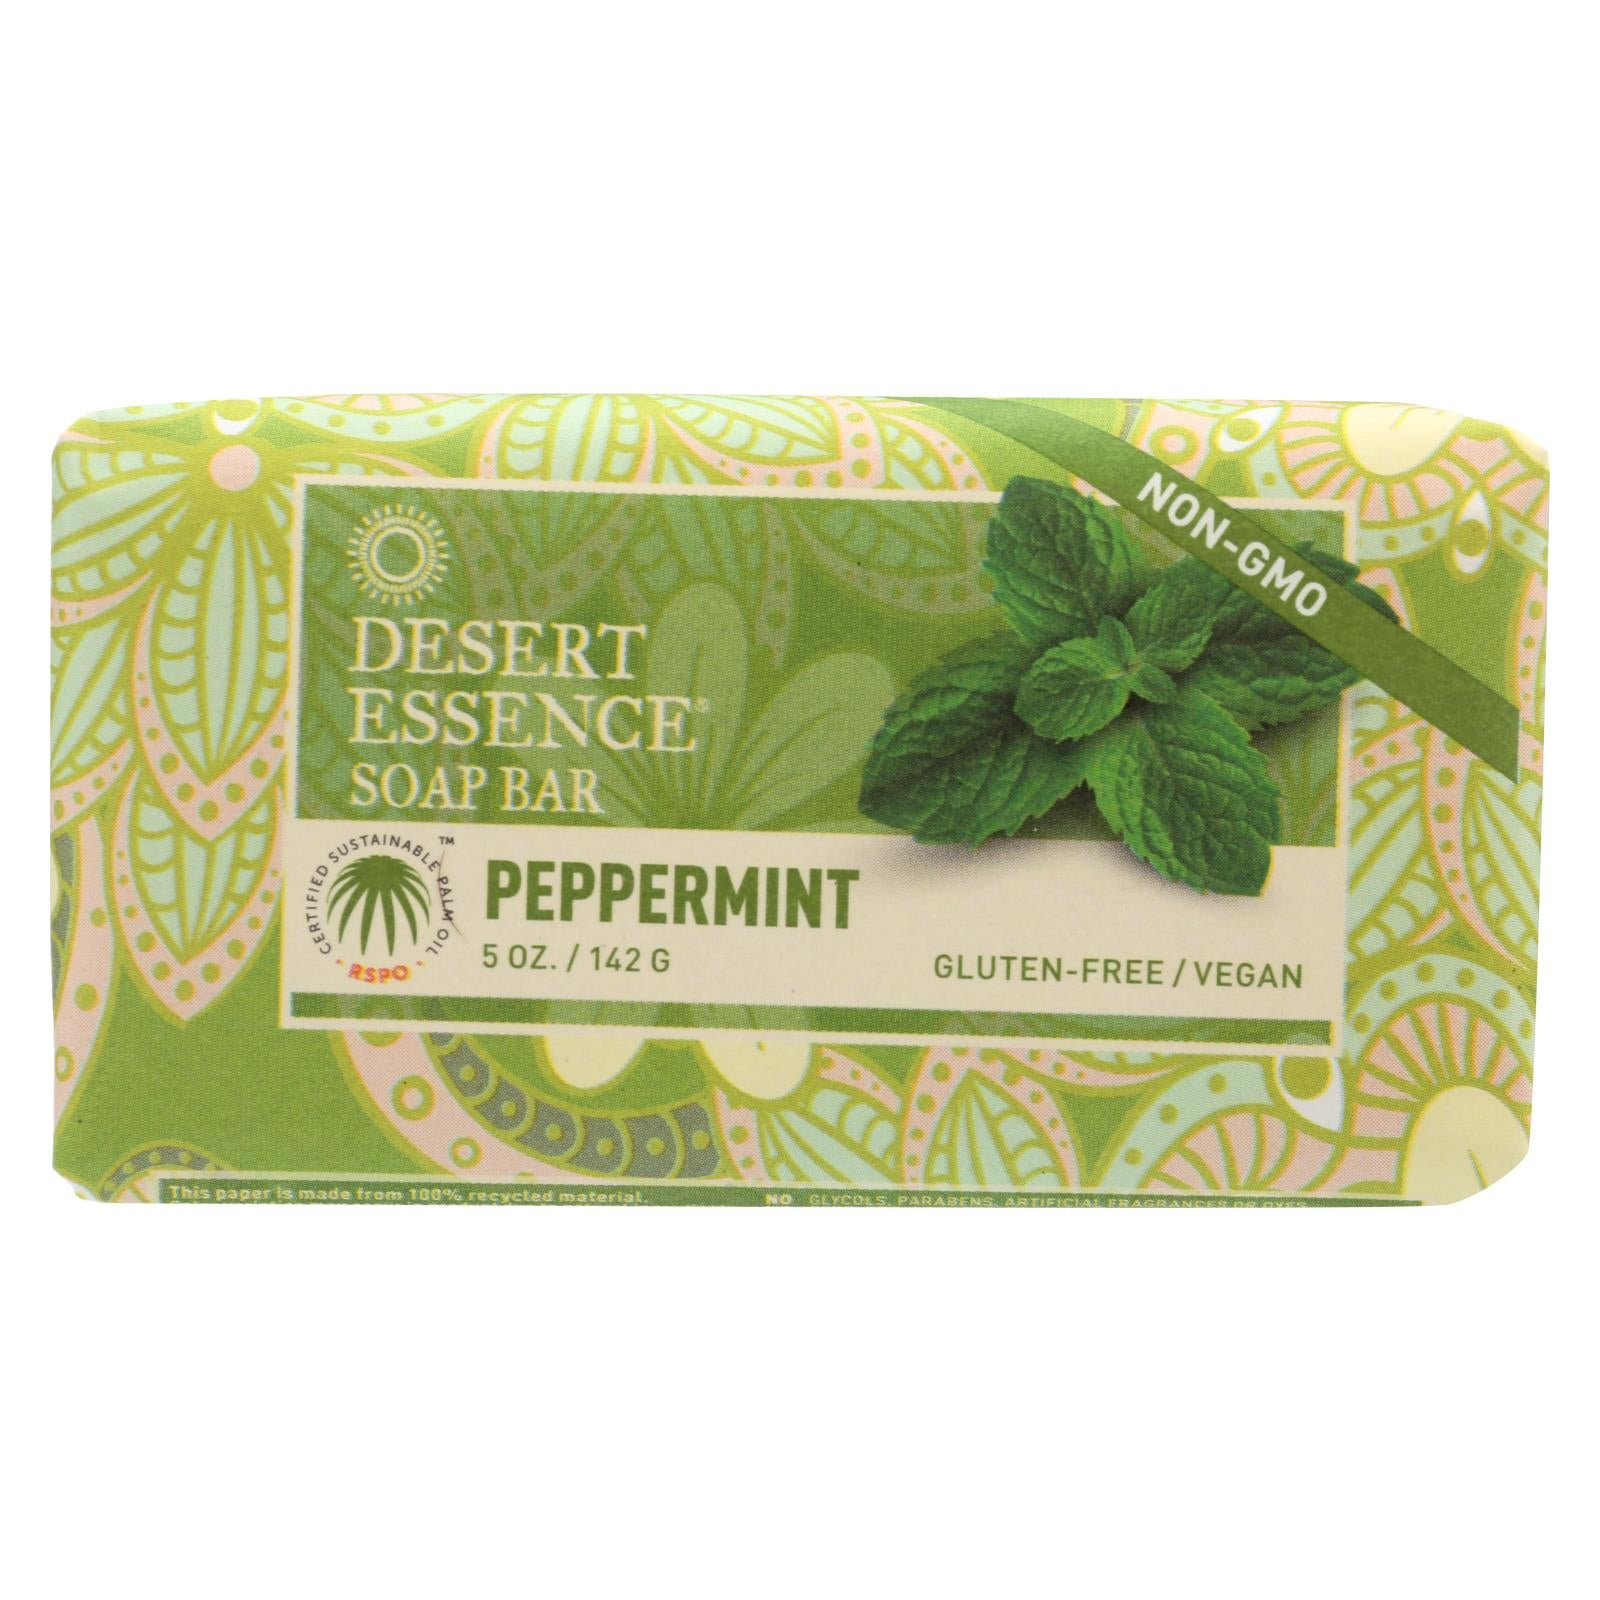 Buy Desert Essence Bar Soap - Peppermint - 5 oz - Bar Soap from Veroeco.com